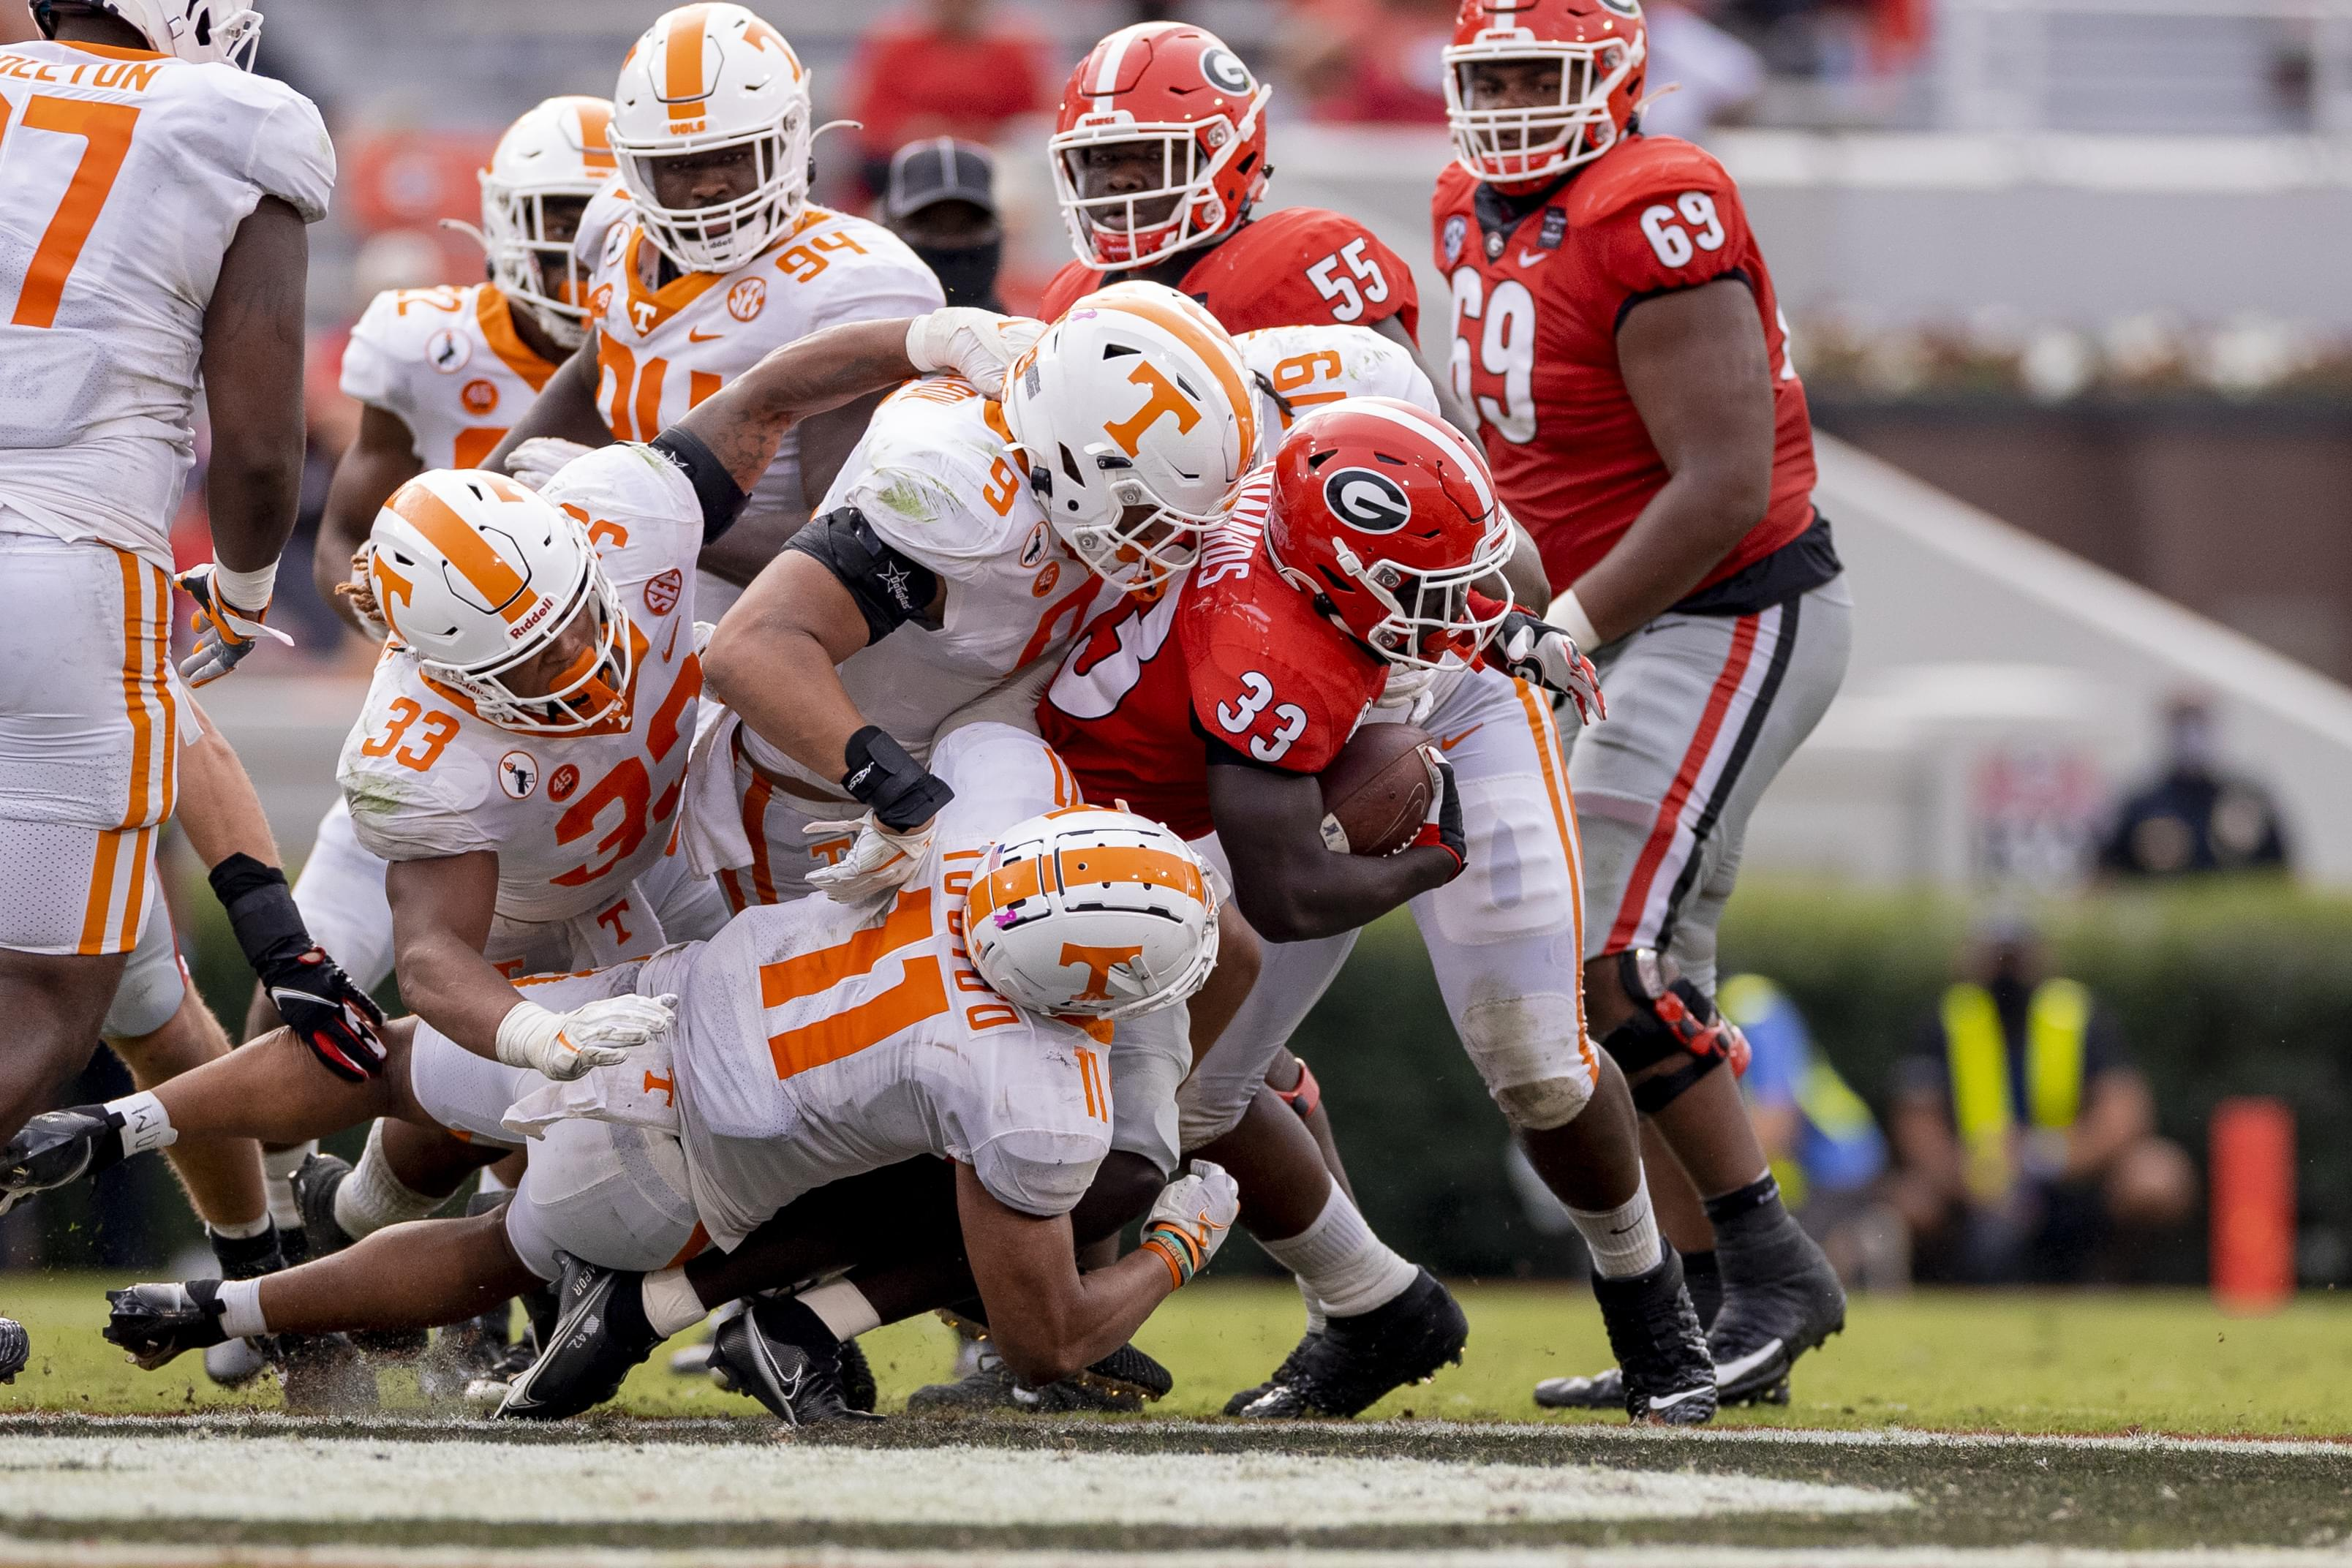 PHOTO GALLERY: Tennessee at Georgia game